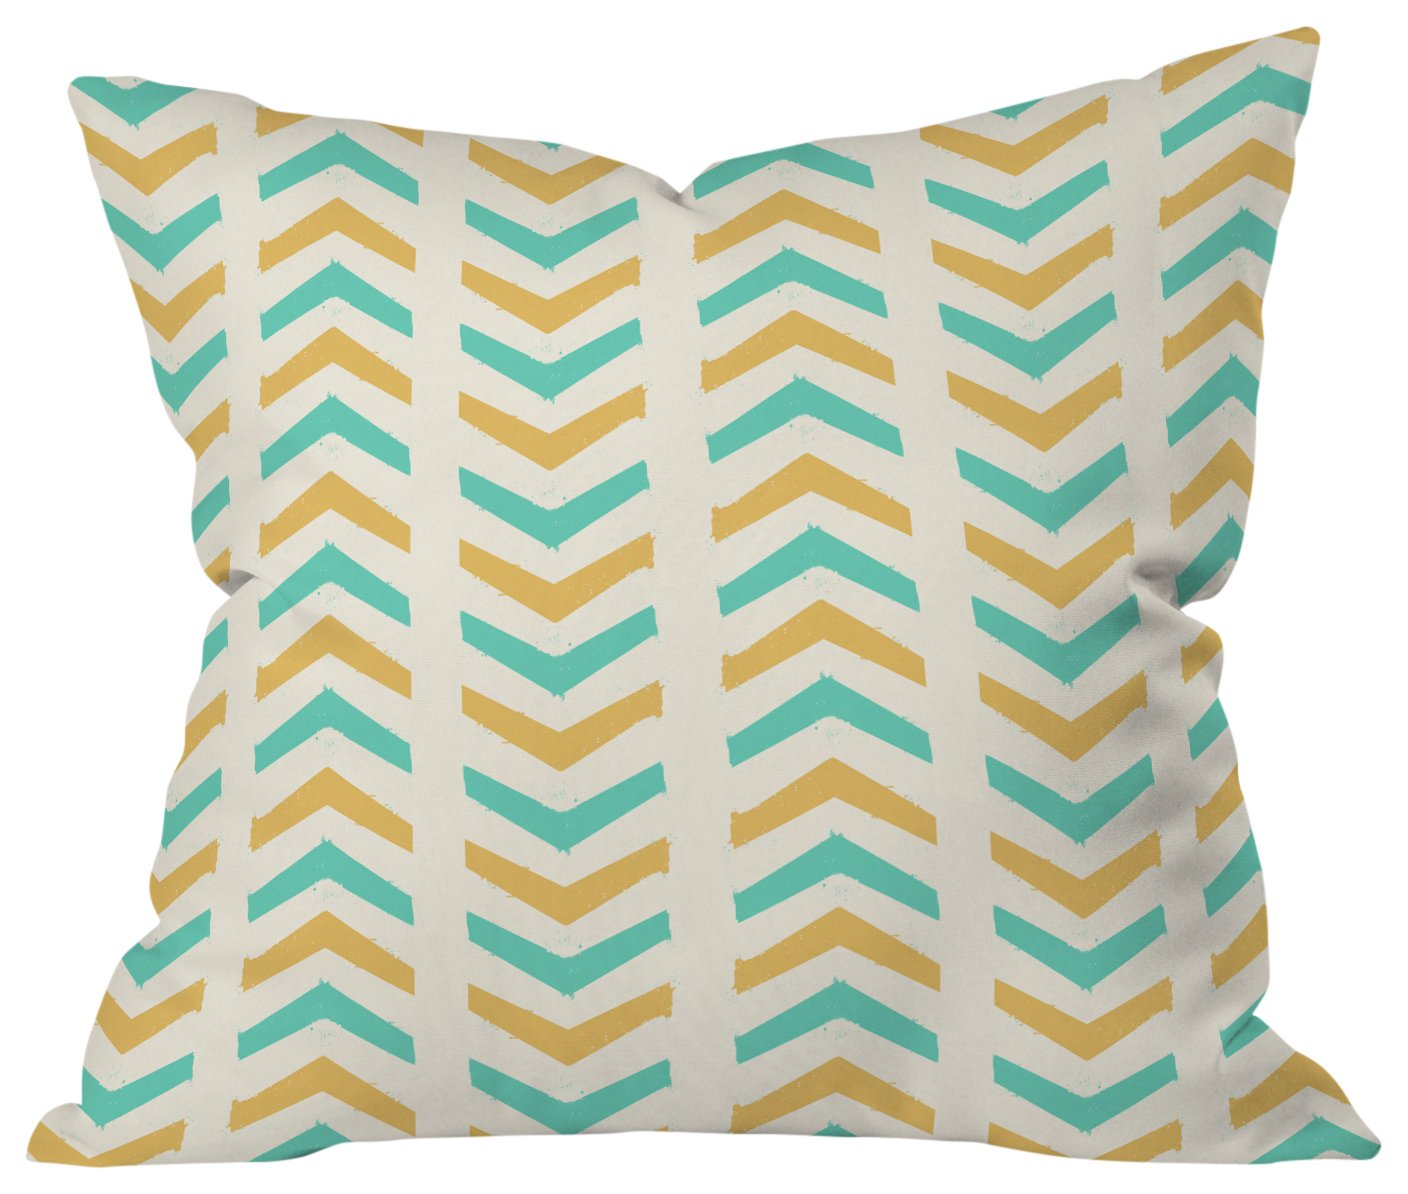 Deny Designs Allyson Johnson Minty Triangles Outdoor Throw Pillow 16 X 16